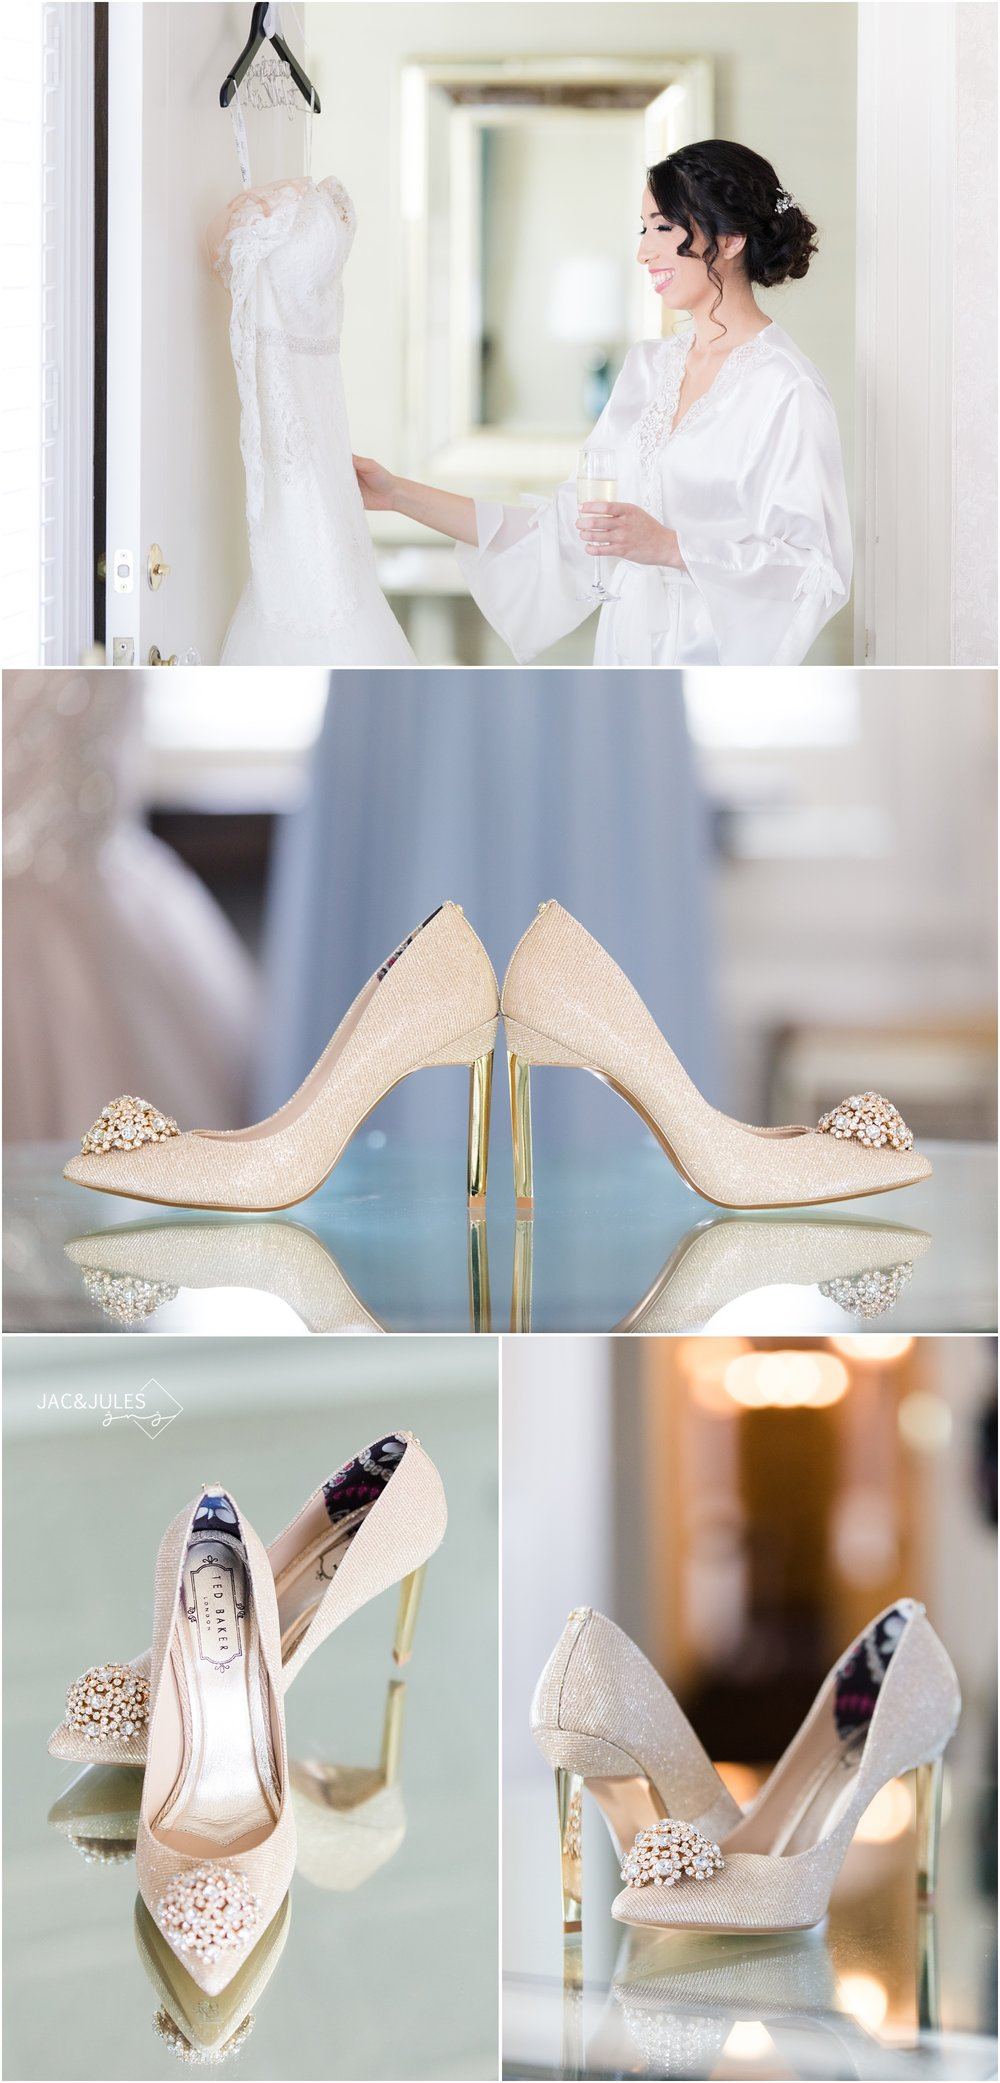 Bridal gown and shoes at The Shadowbrook in Shrewsbury, NJ.